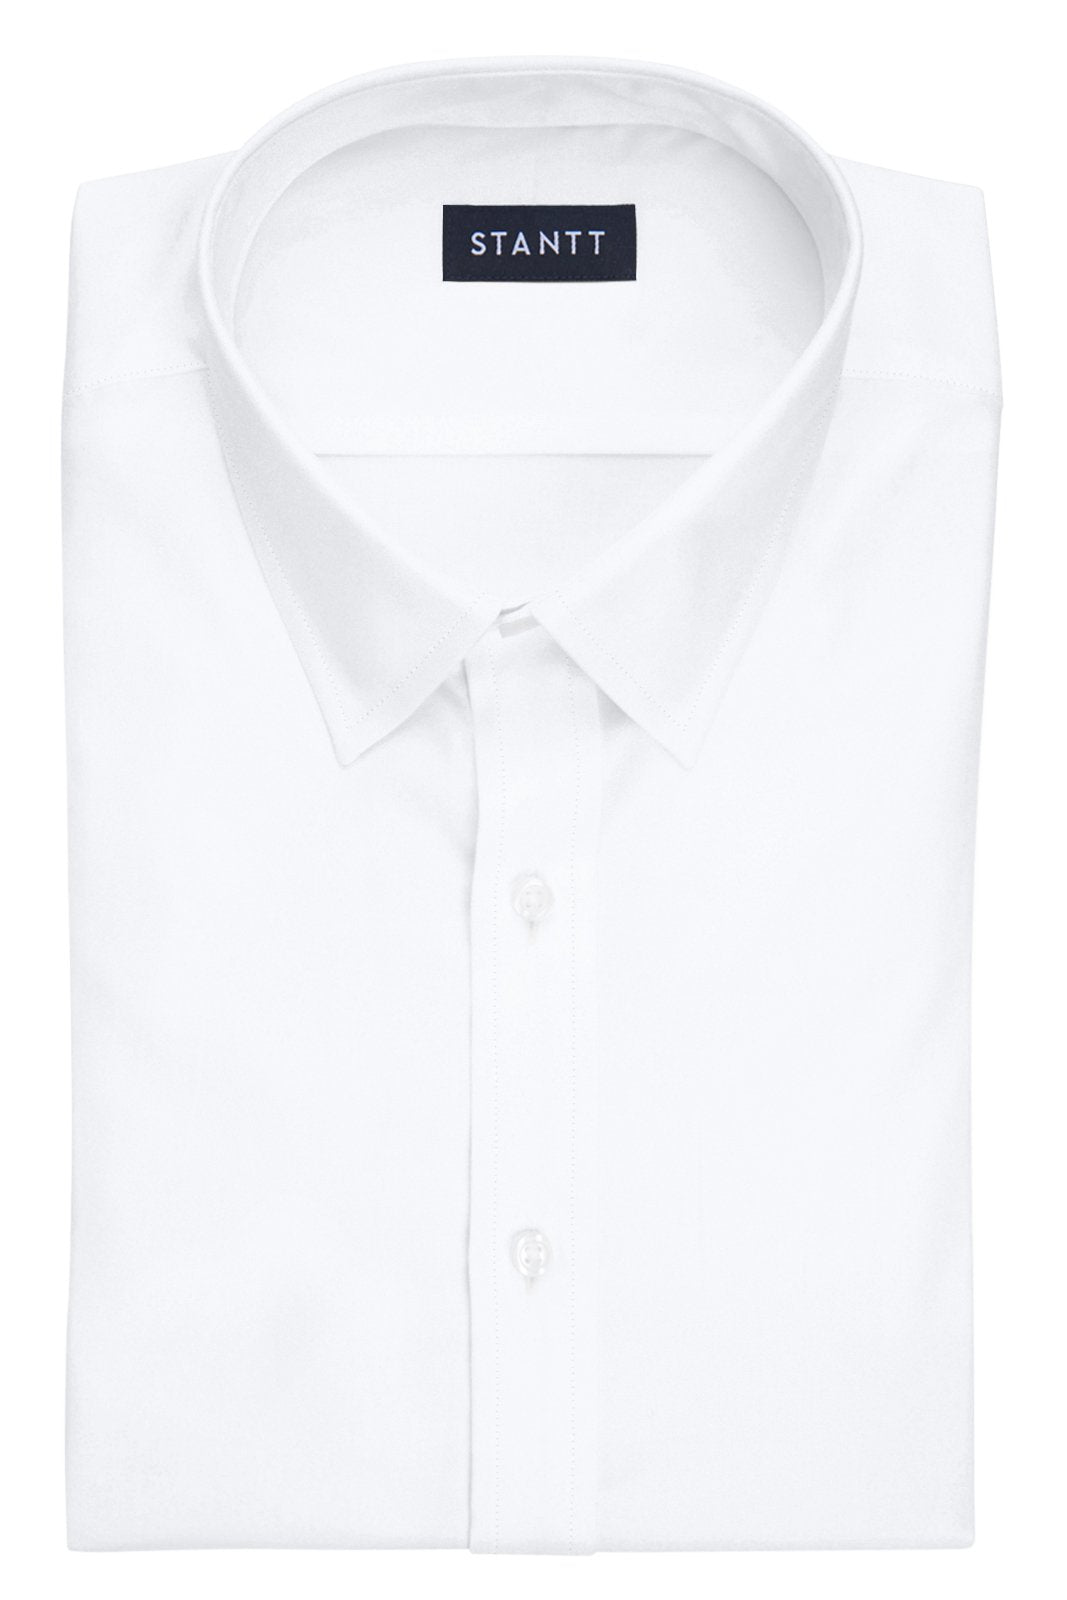 Performance White: Semi-Spread Collar, French Cuff